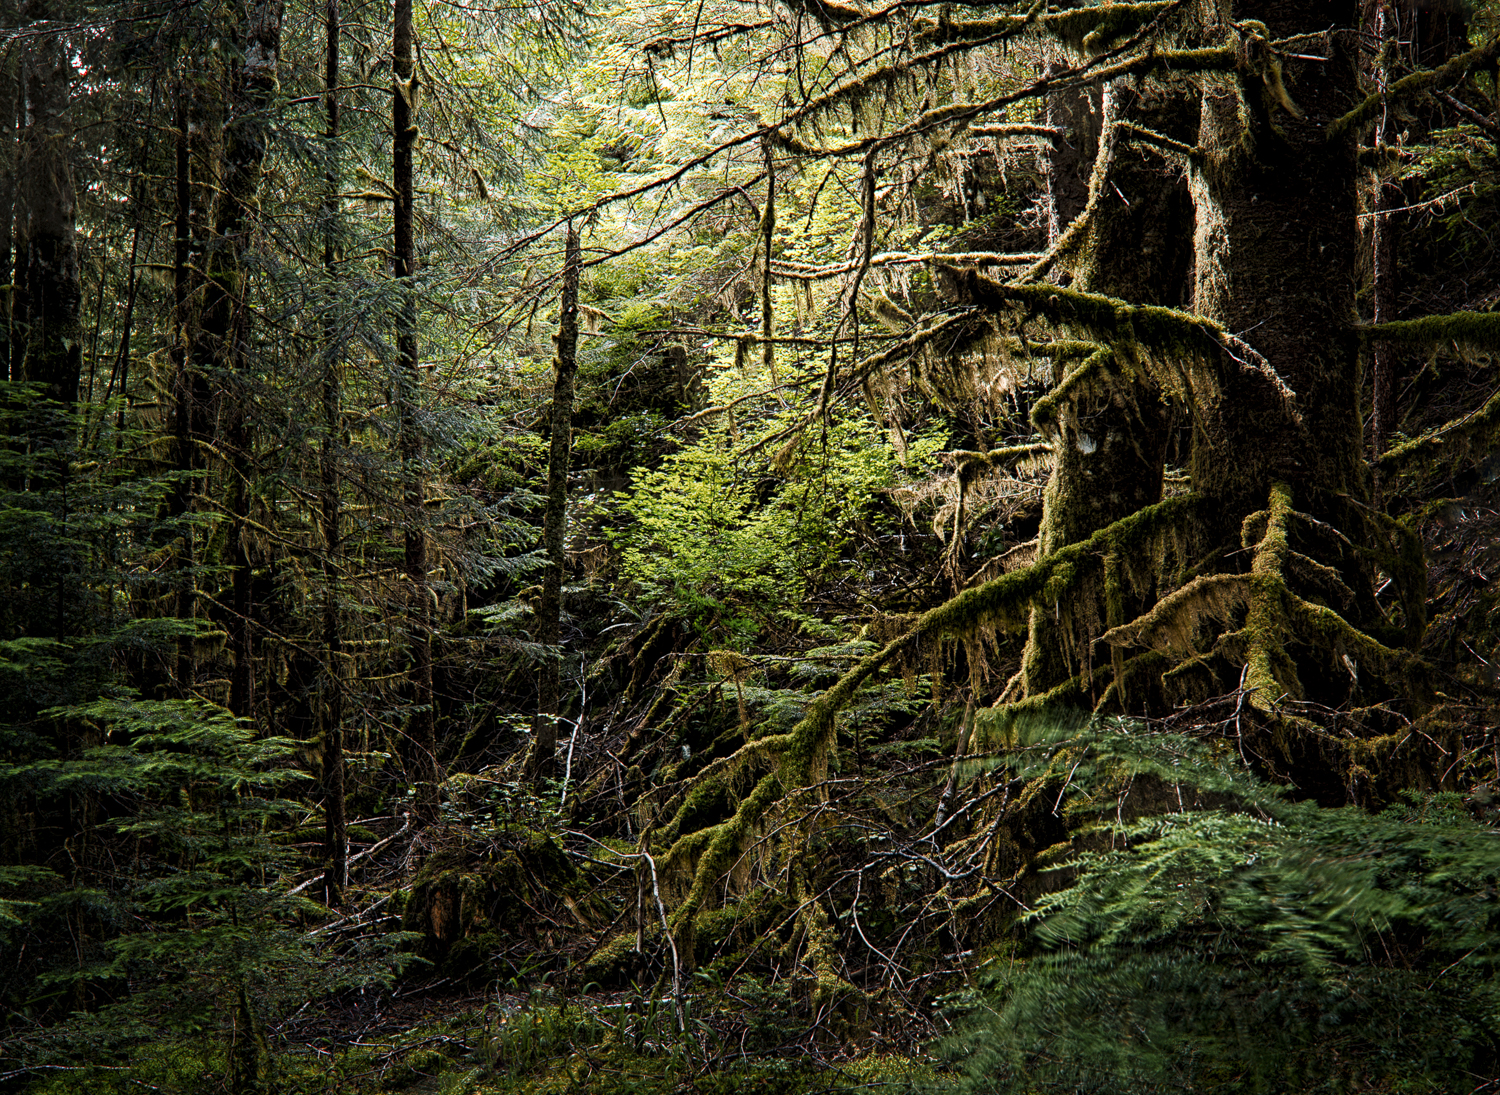 I always ponder the idea of how the native people managed to navigate though these forests